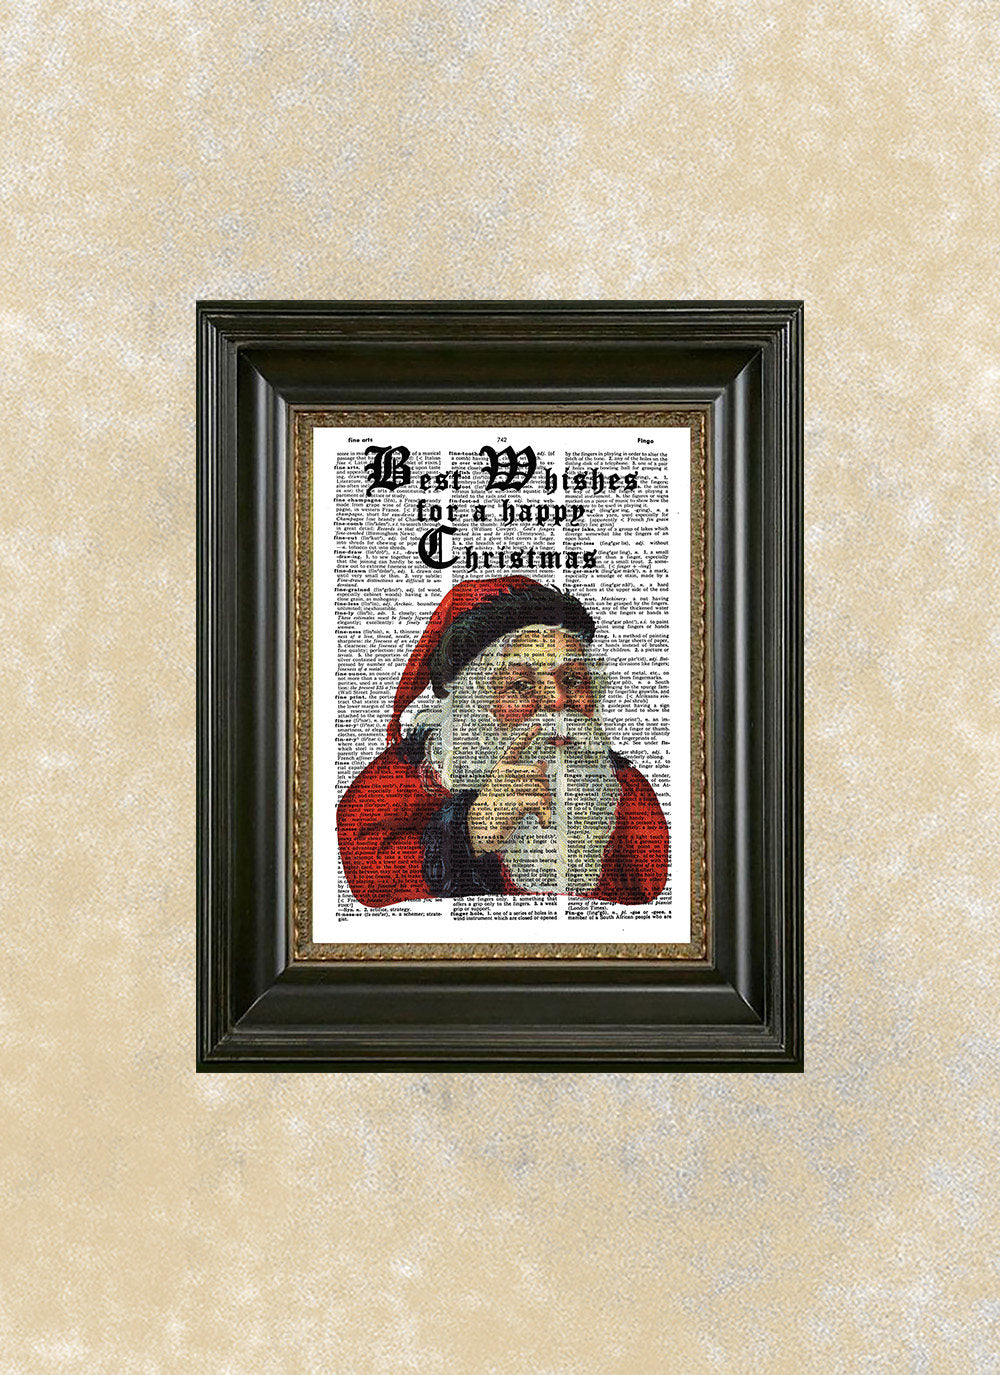 Santa Claus Dictionary Art Print With Quote, Best Wishes For A Happy  Christmas, Charming Christmas Decor, Vintage Santa Claus Illustration